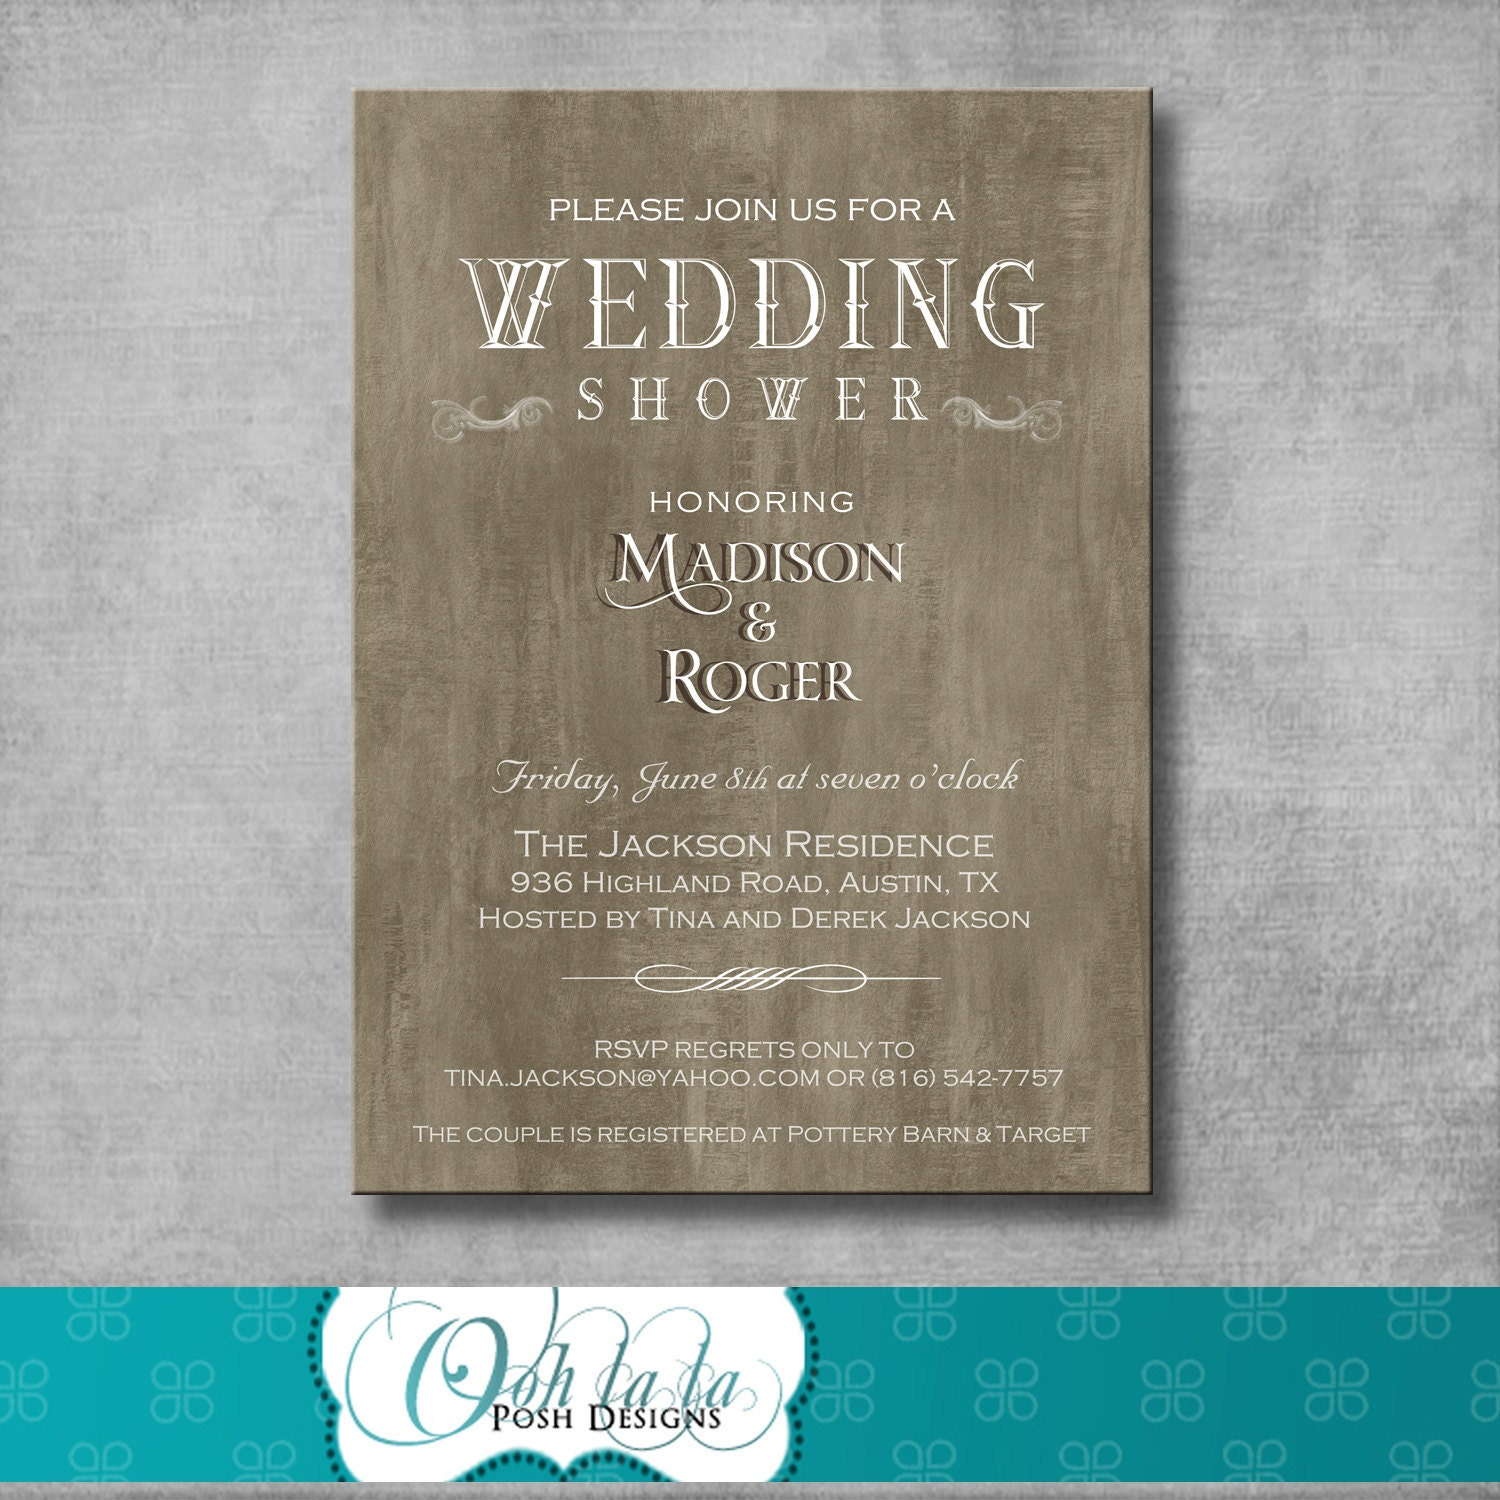 Rustic Elegant Wedding Shower Invitation DIY Printable – Couples Shower Wedding Invitations